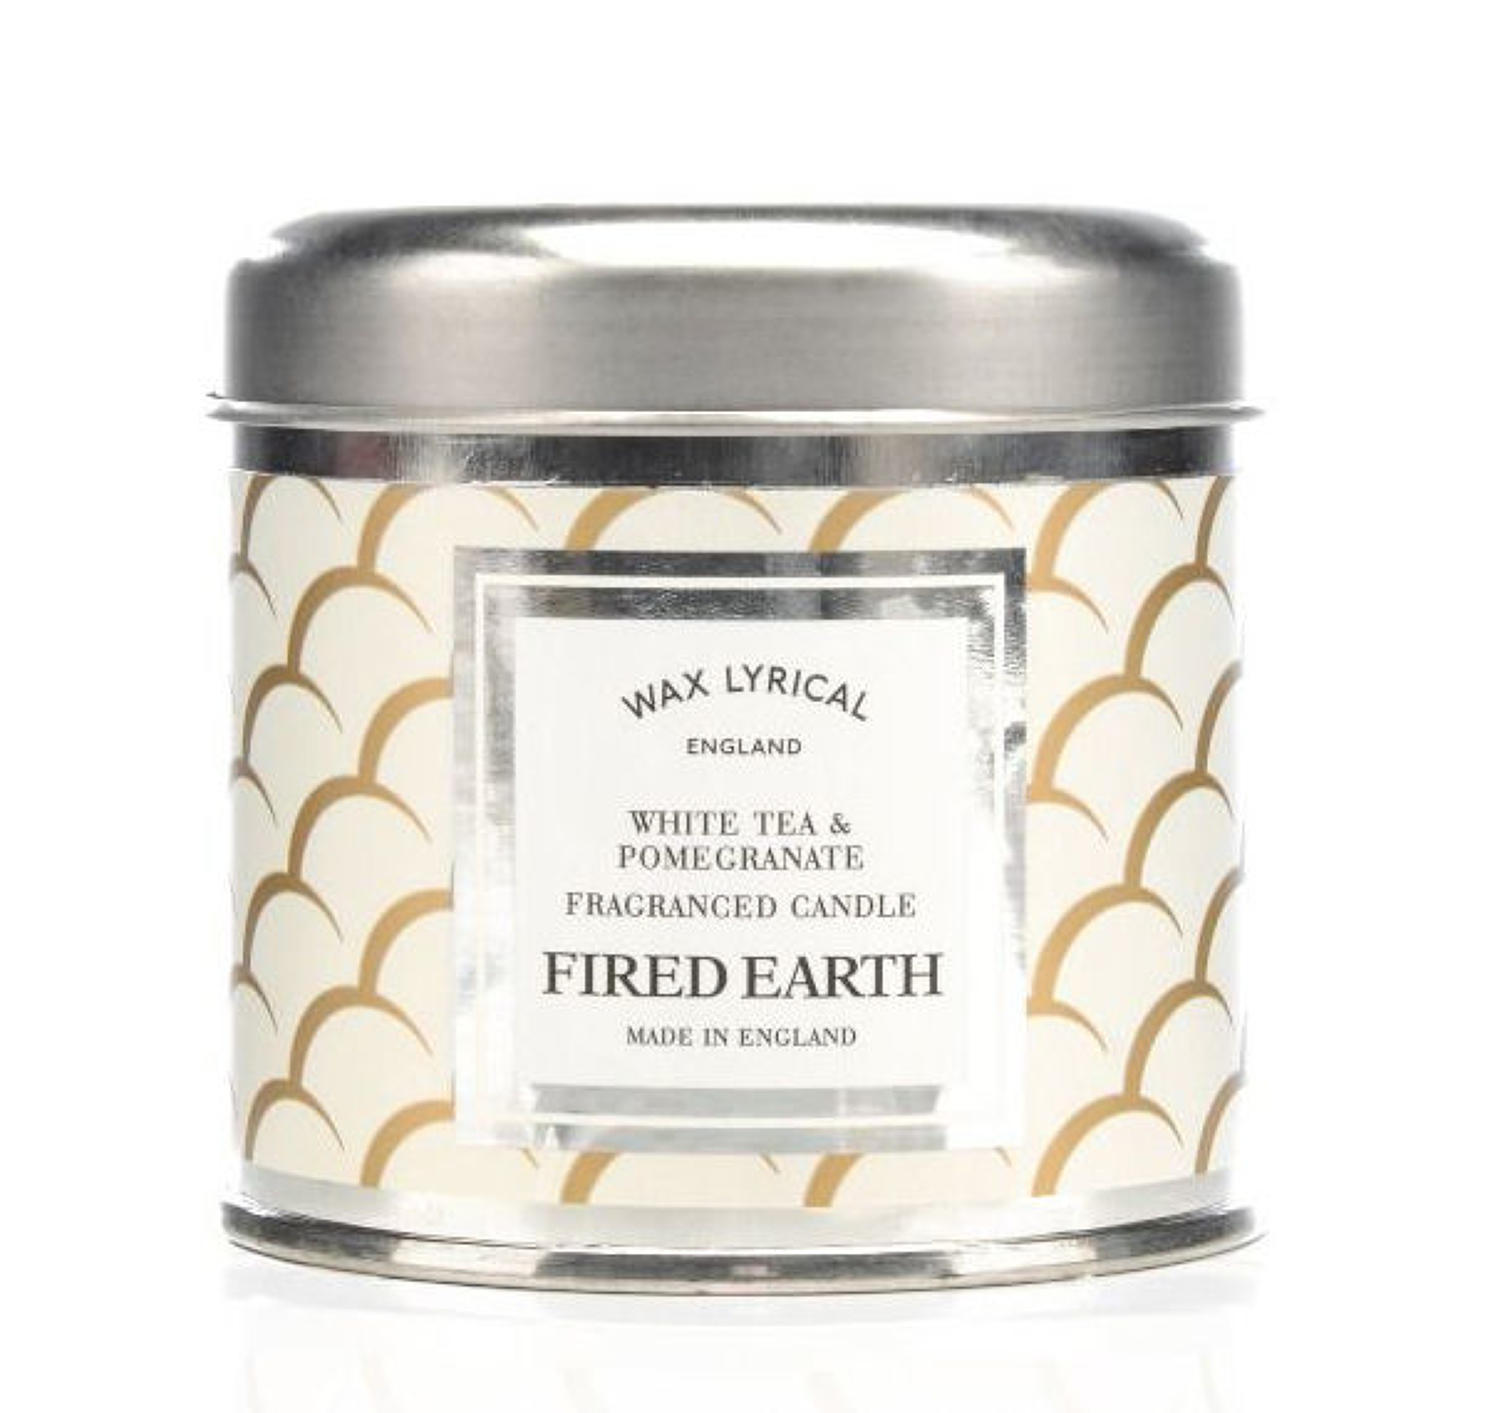 Wax Lyrical Fired Earth White Tea & Pomegranate candle tin